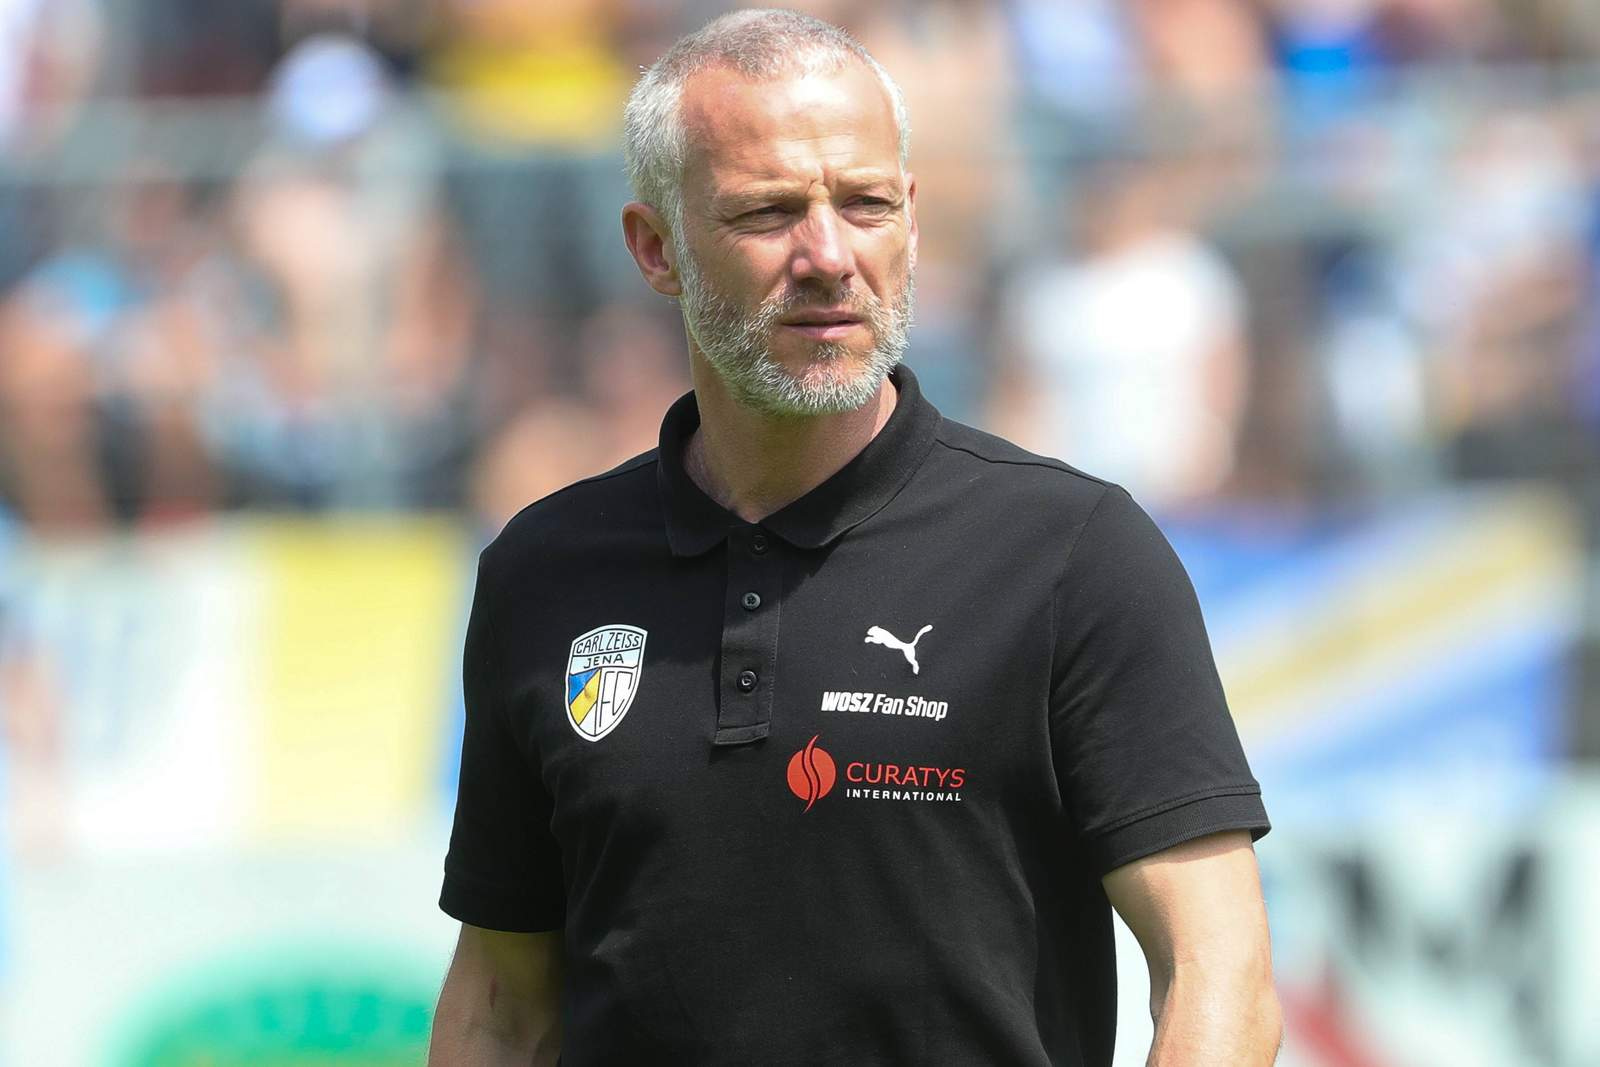 Mark Zimmermann Trainer von Carl Zeiss Jena